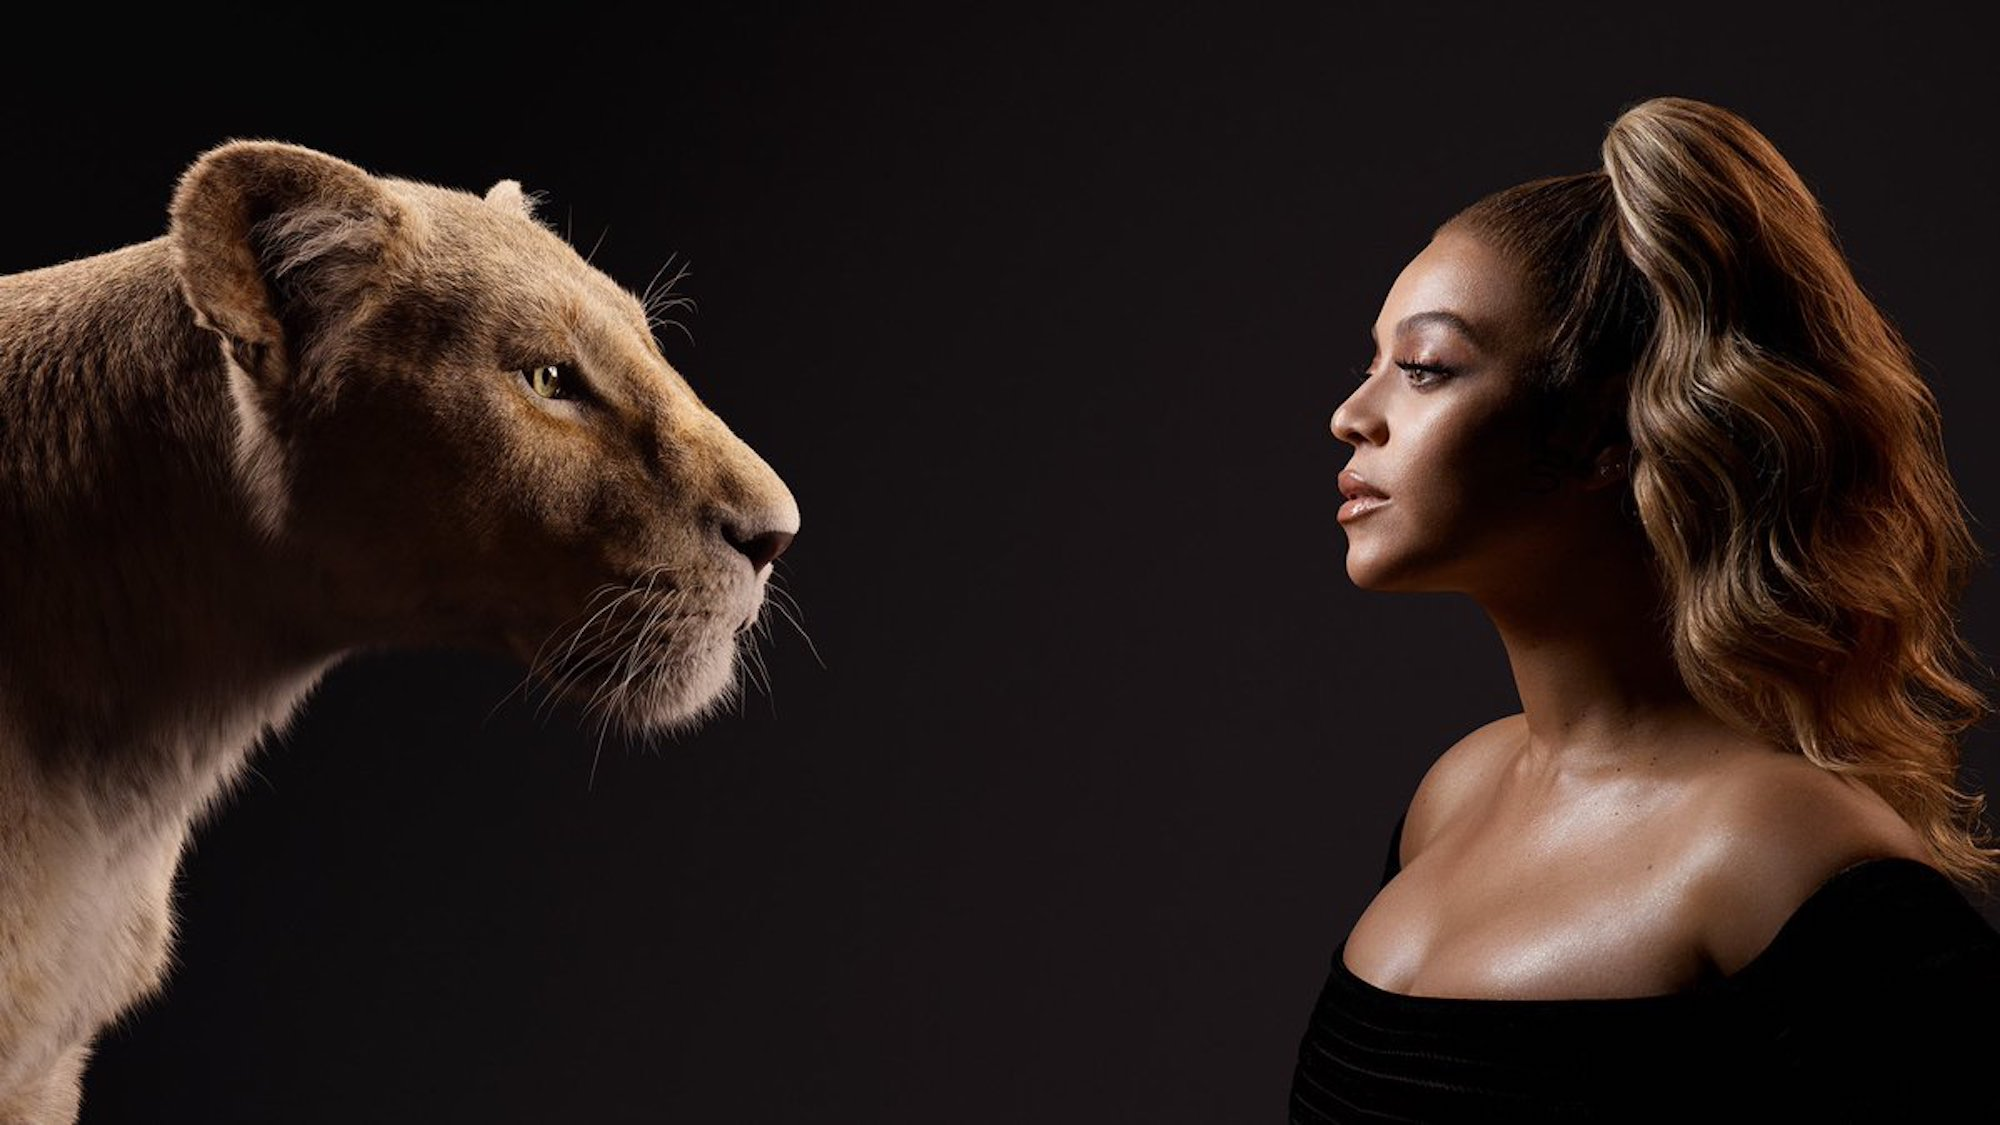 Beyonce in new Lion King poster